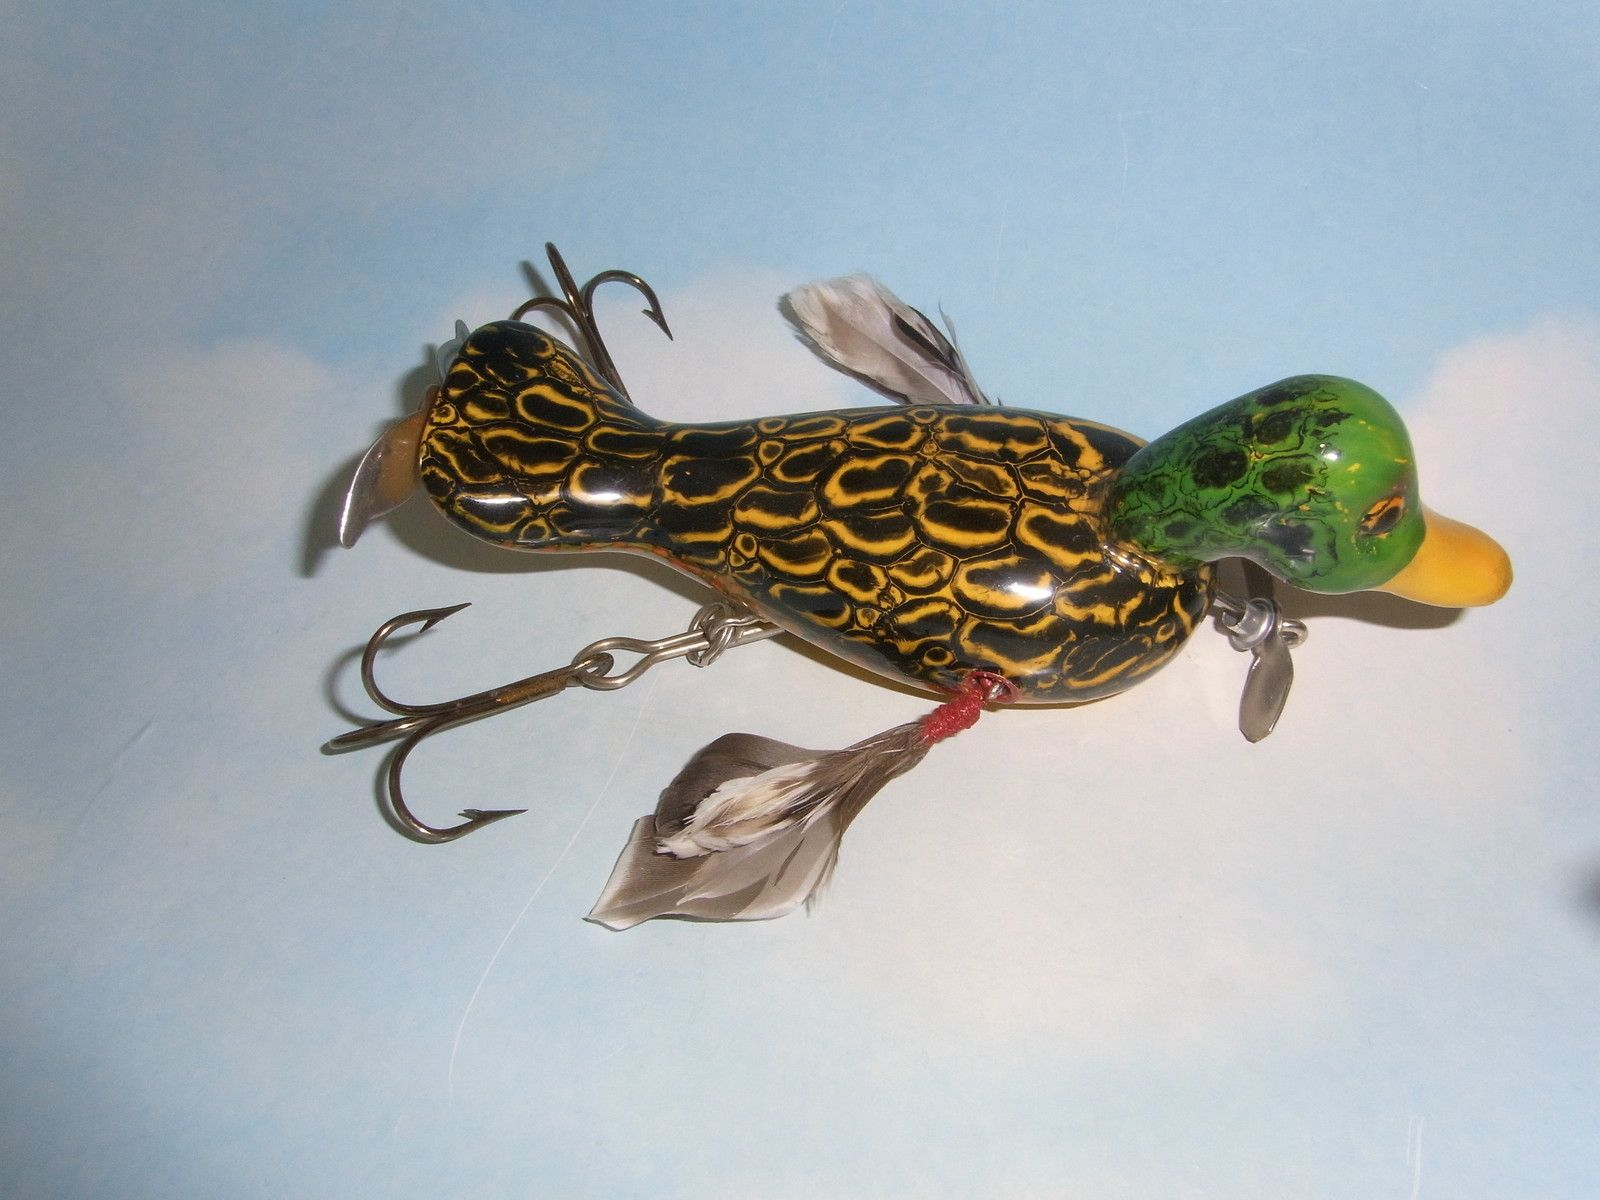 Share for Duck fishing lure